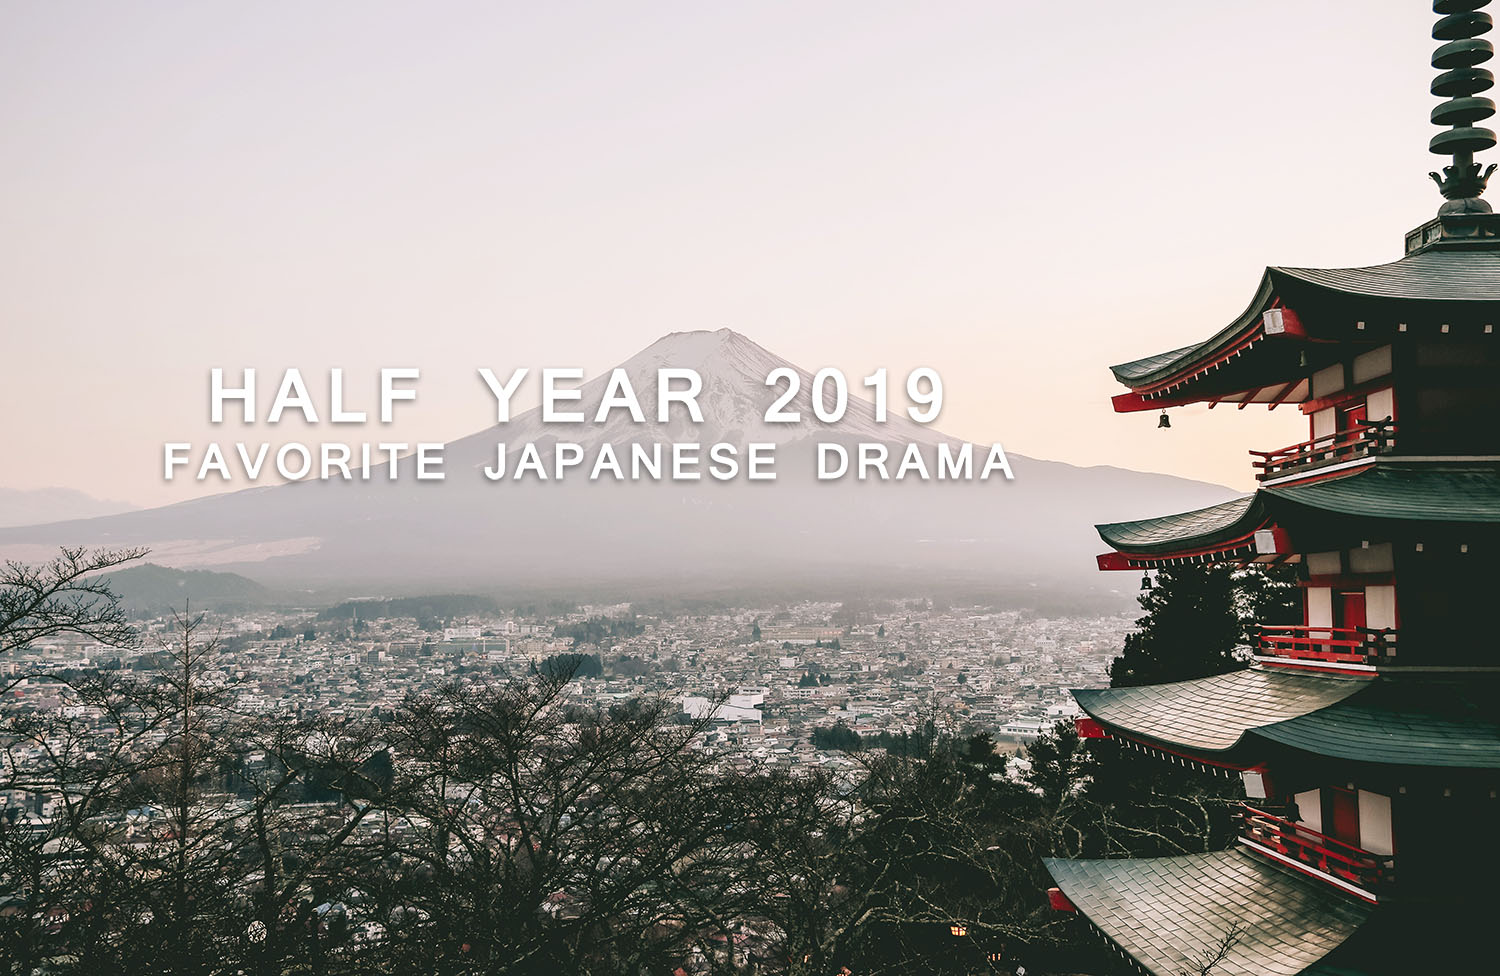 my favorite japanese drama 2019